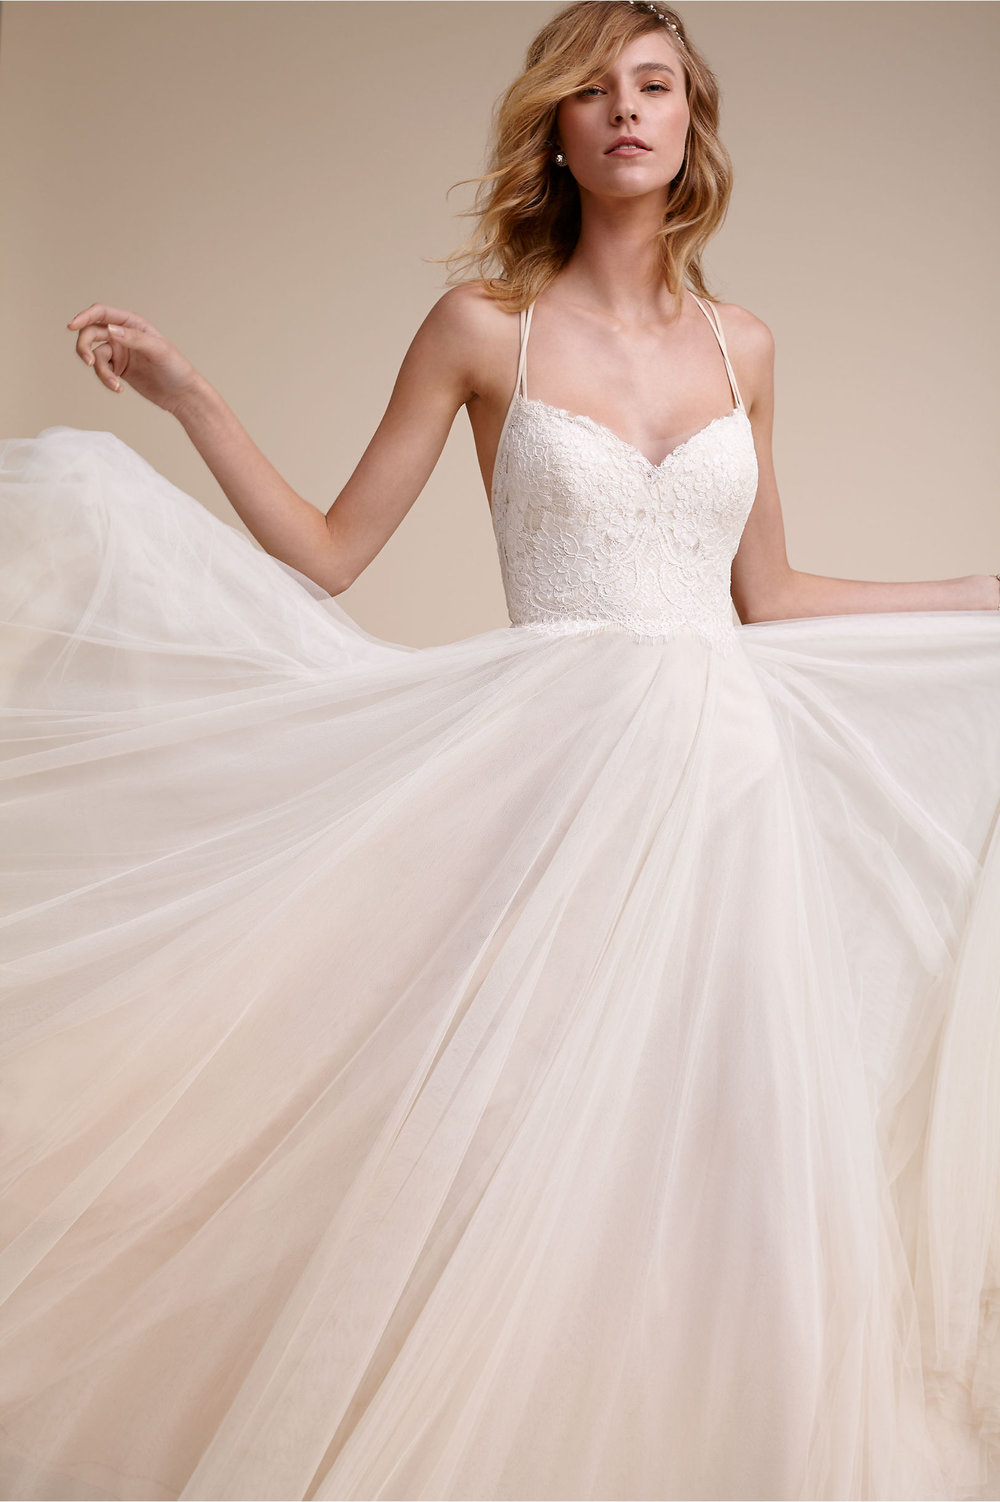 Rosalind Gown - Sorry not sorry, this beaut is also from BHLDN. Dainty straps create a beautiful back detail and a full tulle skirt give this gown so much movement and charm. Price: $1150